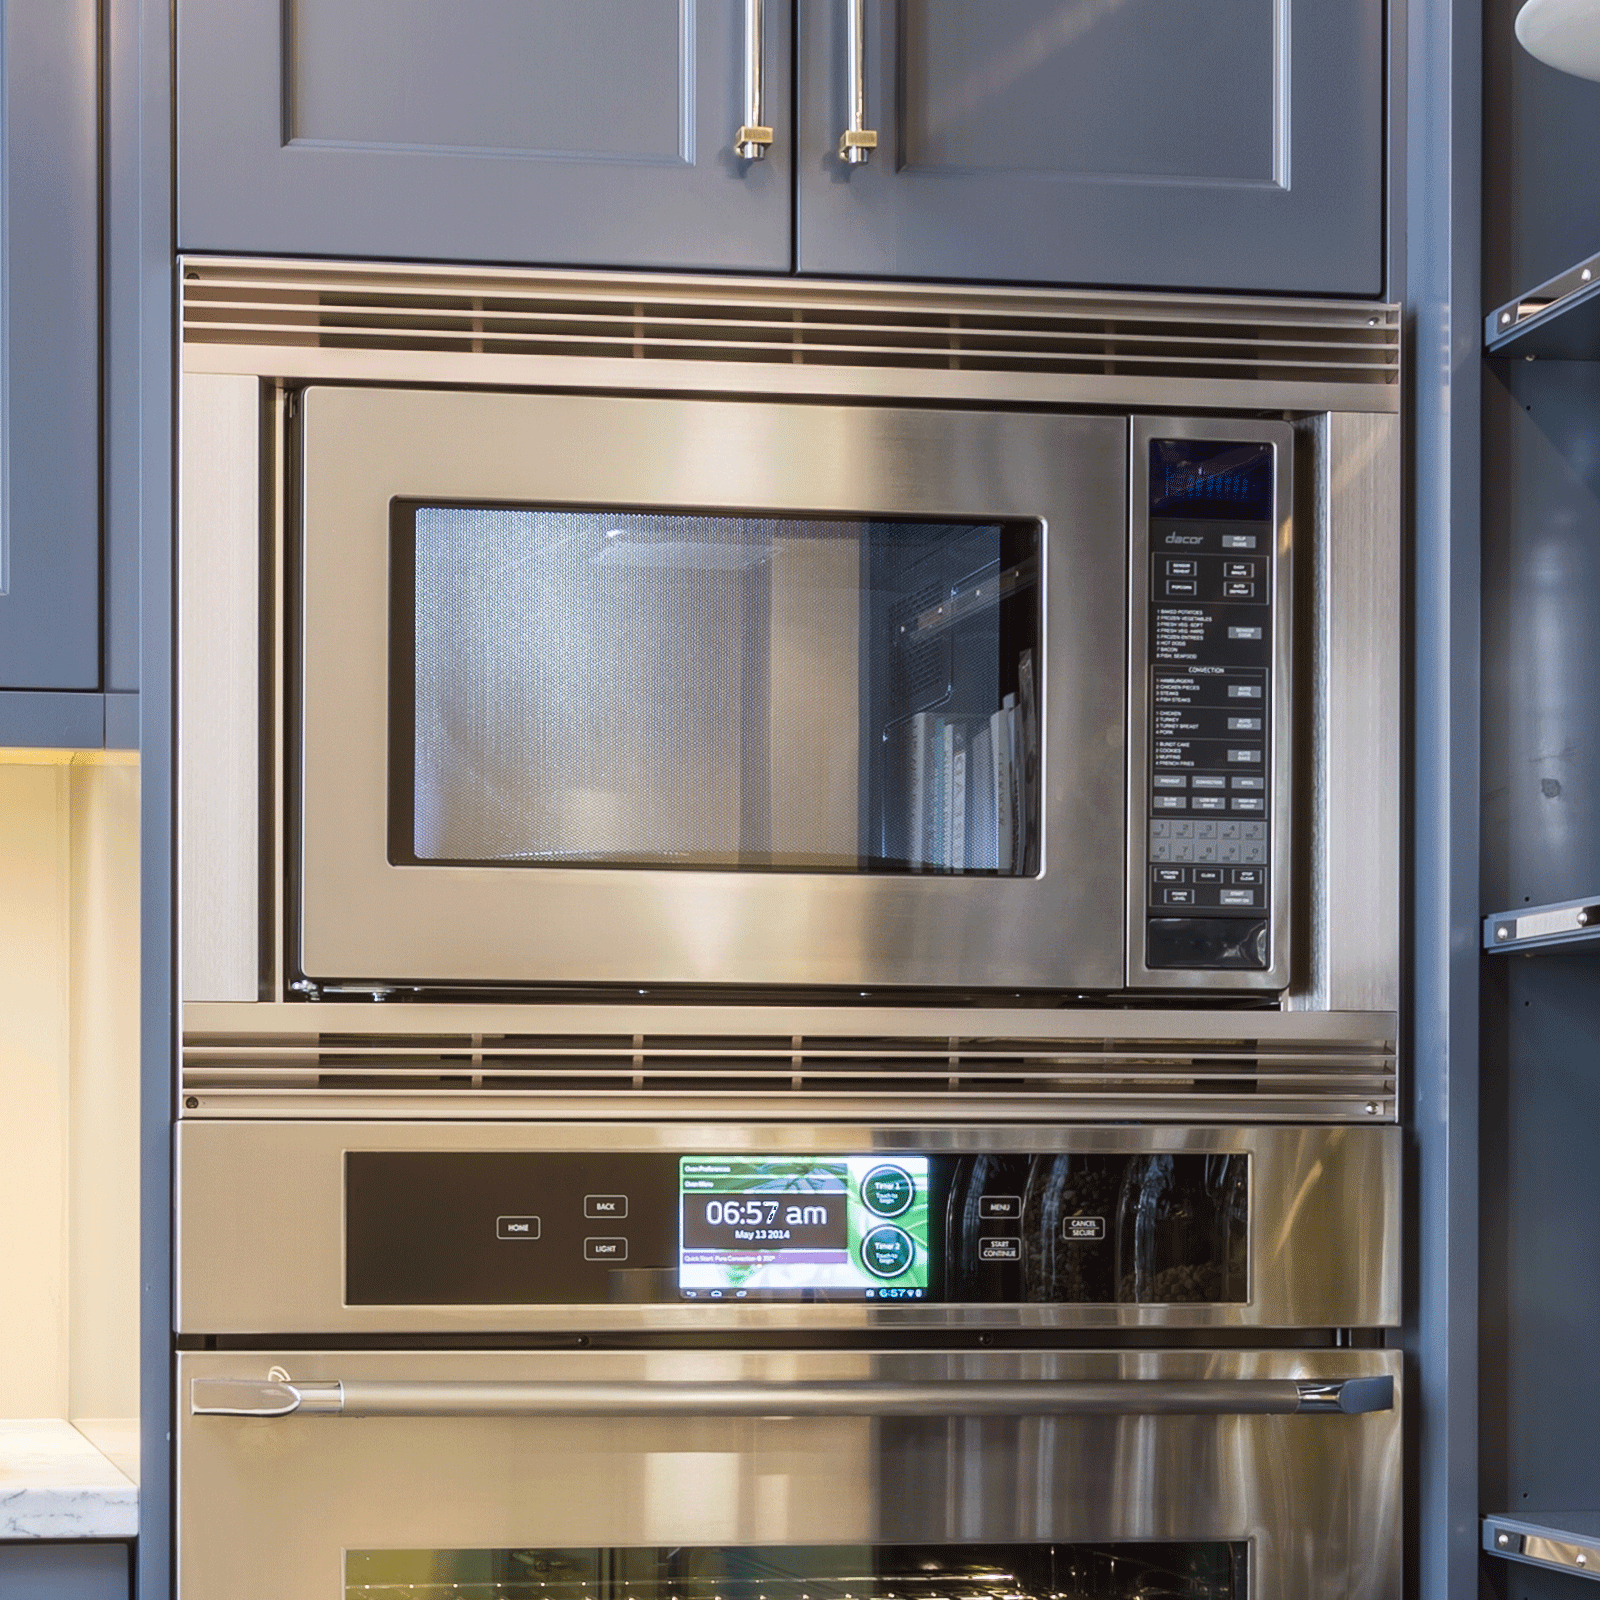 convection microwave in stainless steel